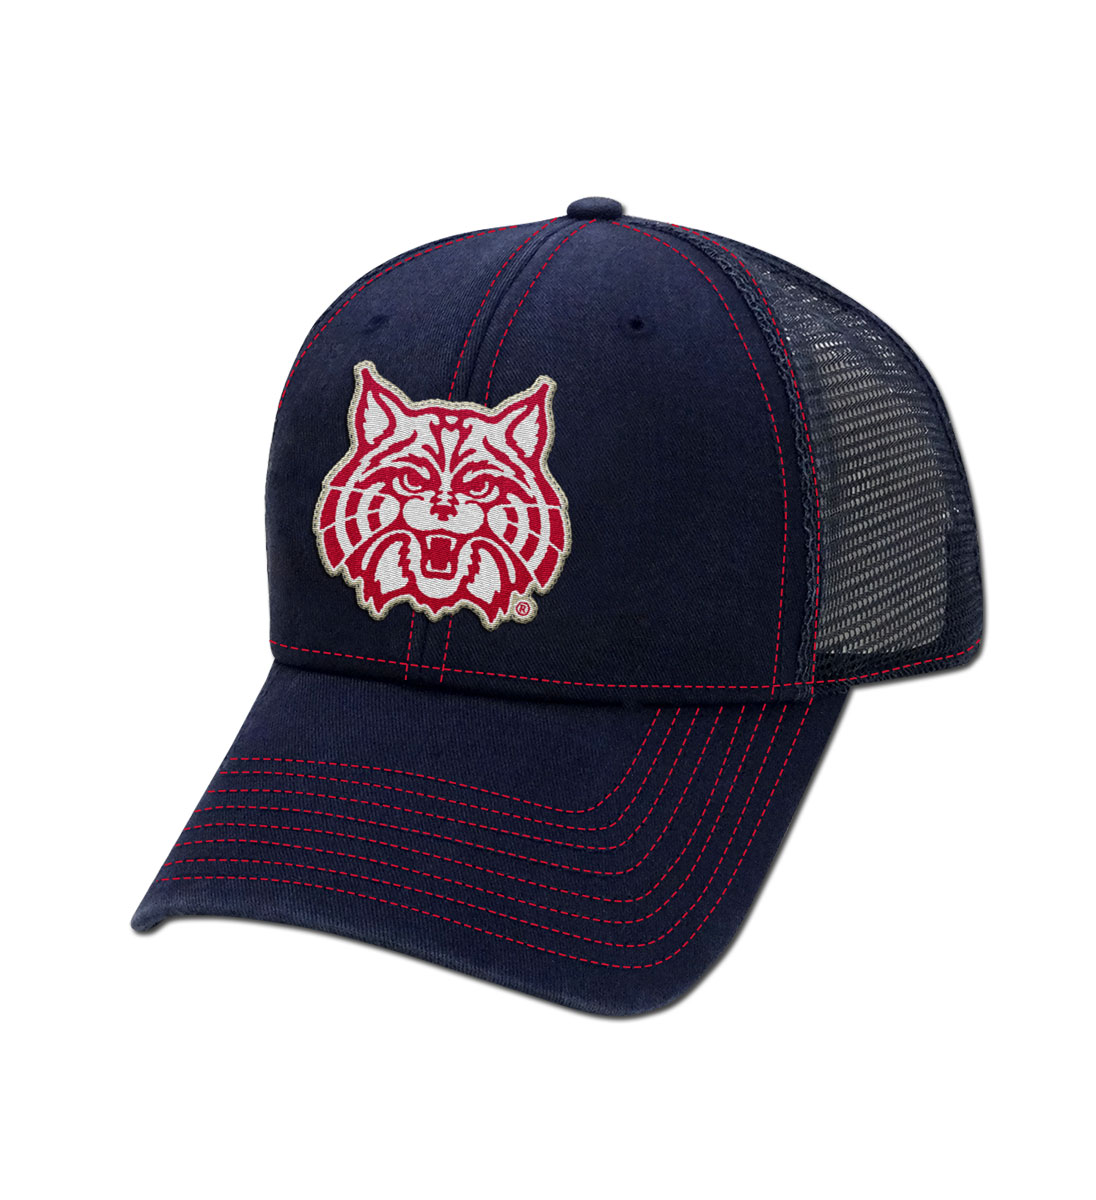 The Game: Arizona Wildcat Face Comfort Twill Trucker